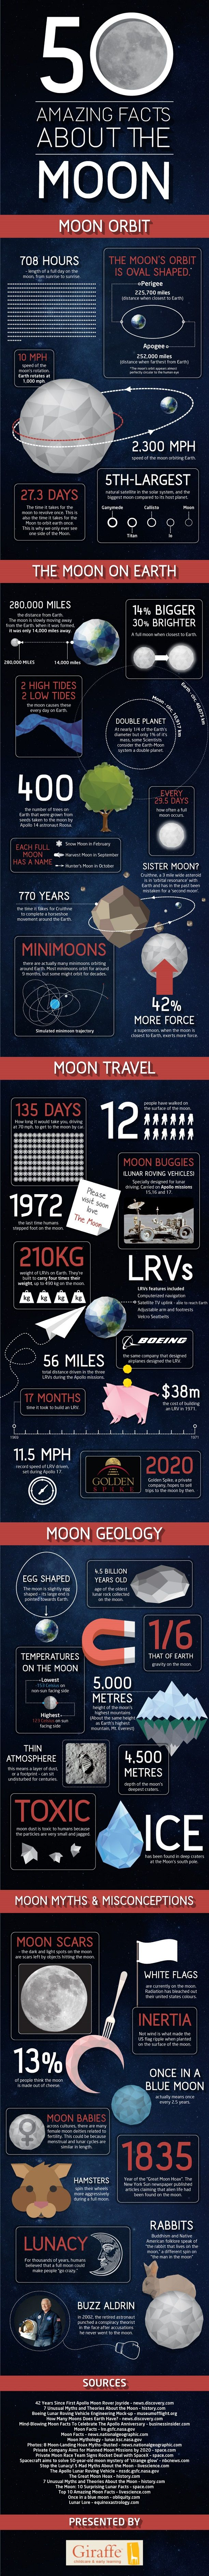 50 Amazing Facts About The Moon (for #LunrMissionOne)